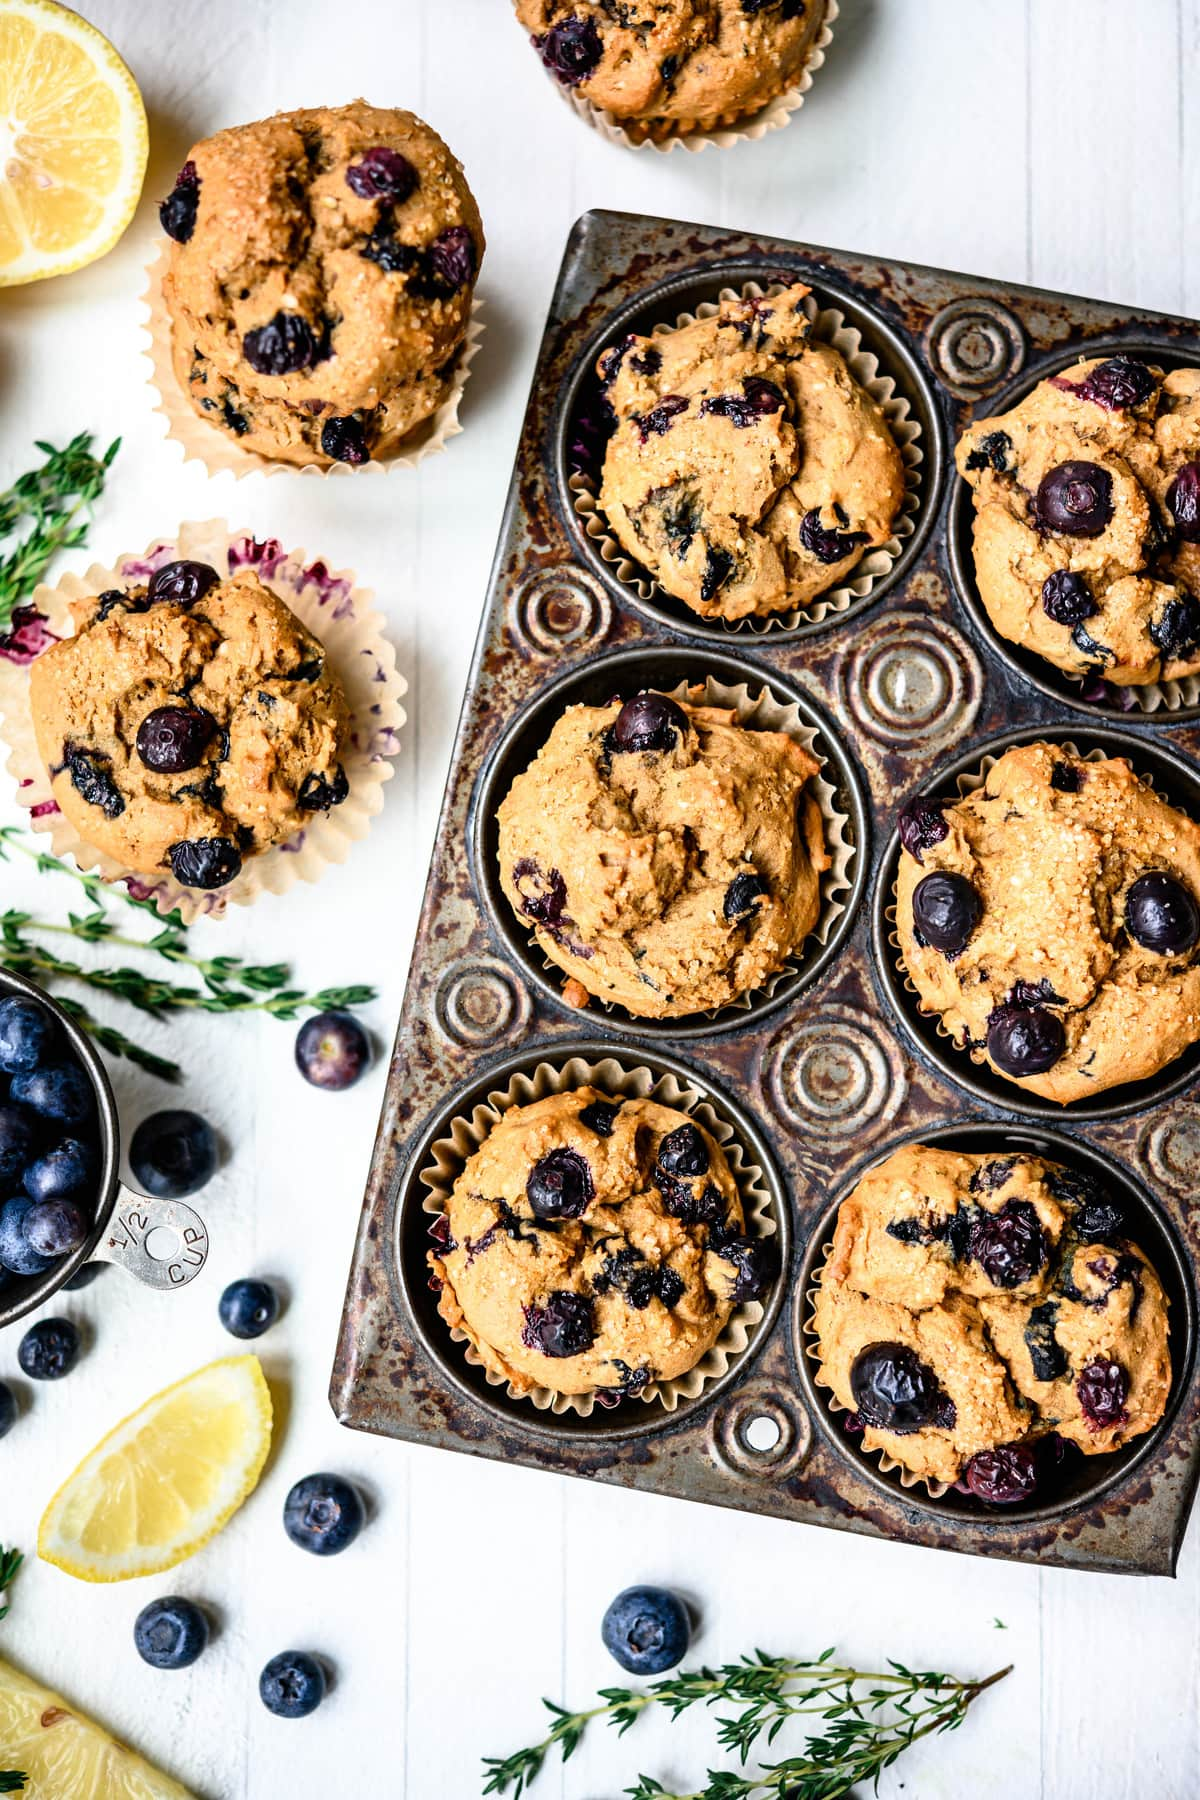 Overhead view of vegan blueberry lemon muffins in rustic muffin tin on white background